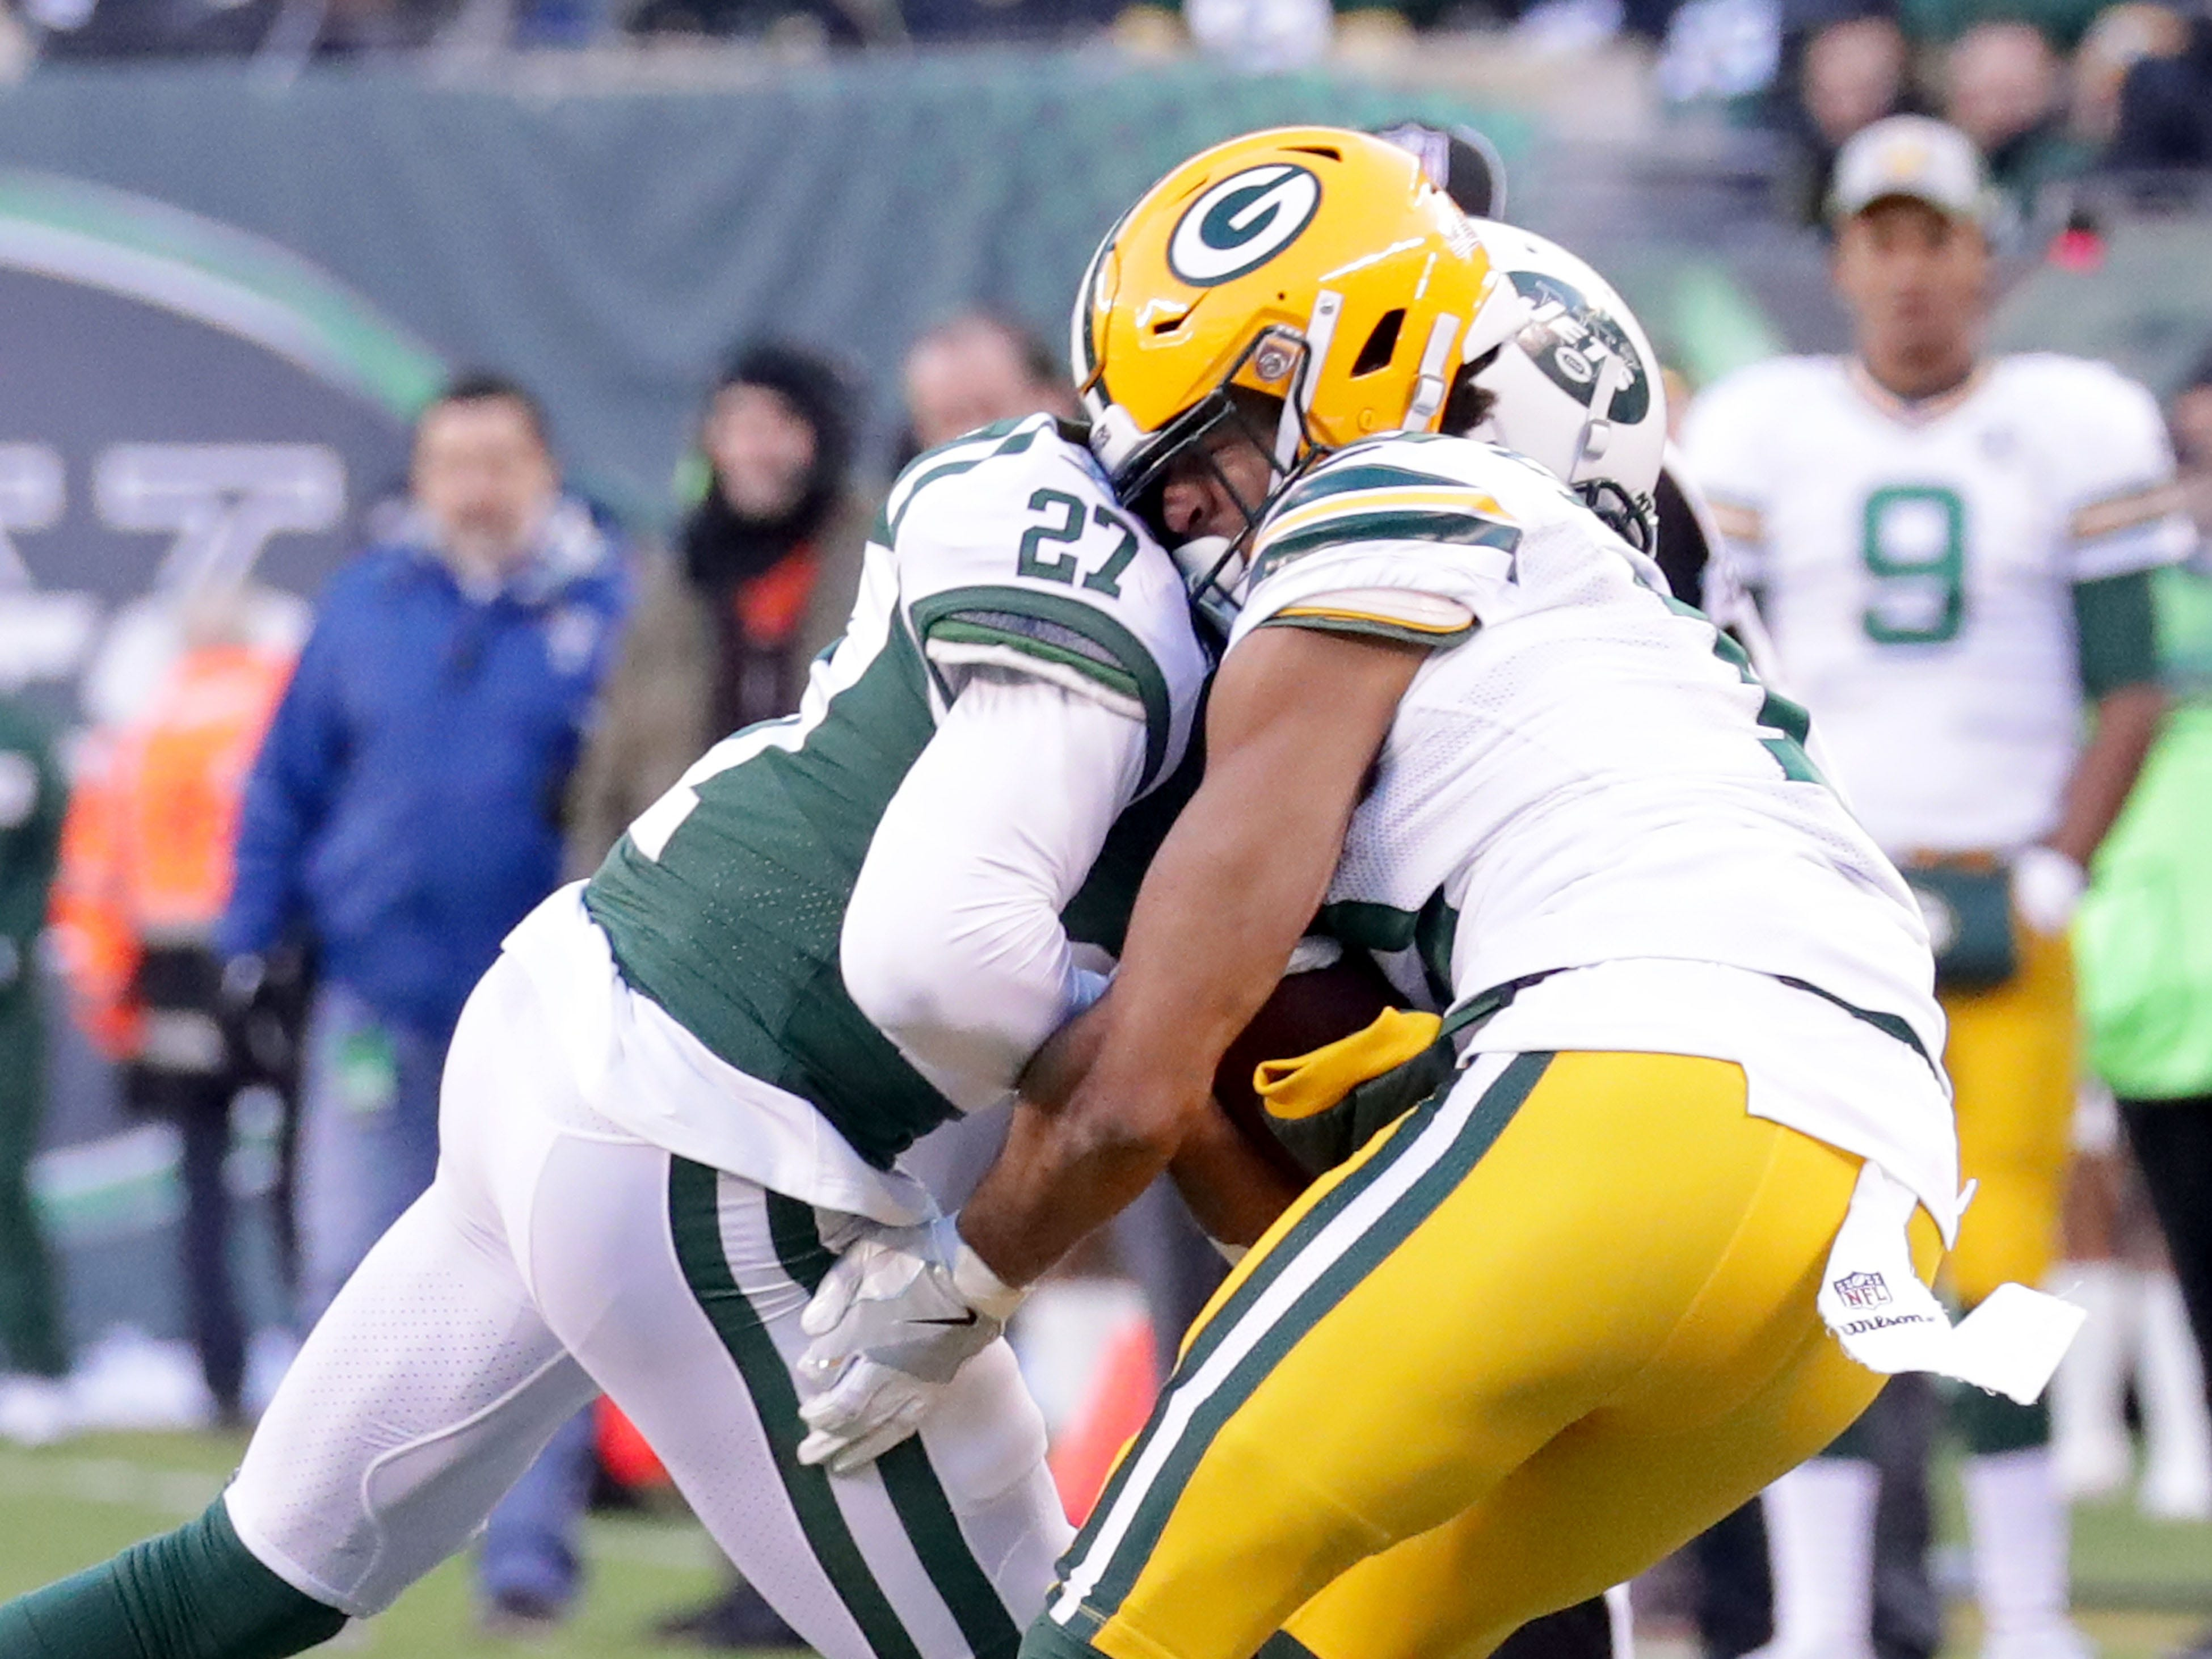 Green Bay Packers' Equanimeous St. Brown takes a blow from New York Jets' Darryl Roberts,  where an unnecessary roughness penalty was called on the Jets for the hit during the 2nd half of Packers 44-38 overtime win against the New York Jets at MetLife Stadium Sunday, Dec. 23, 2018, in East Rutherford.